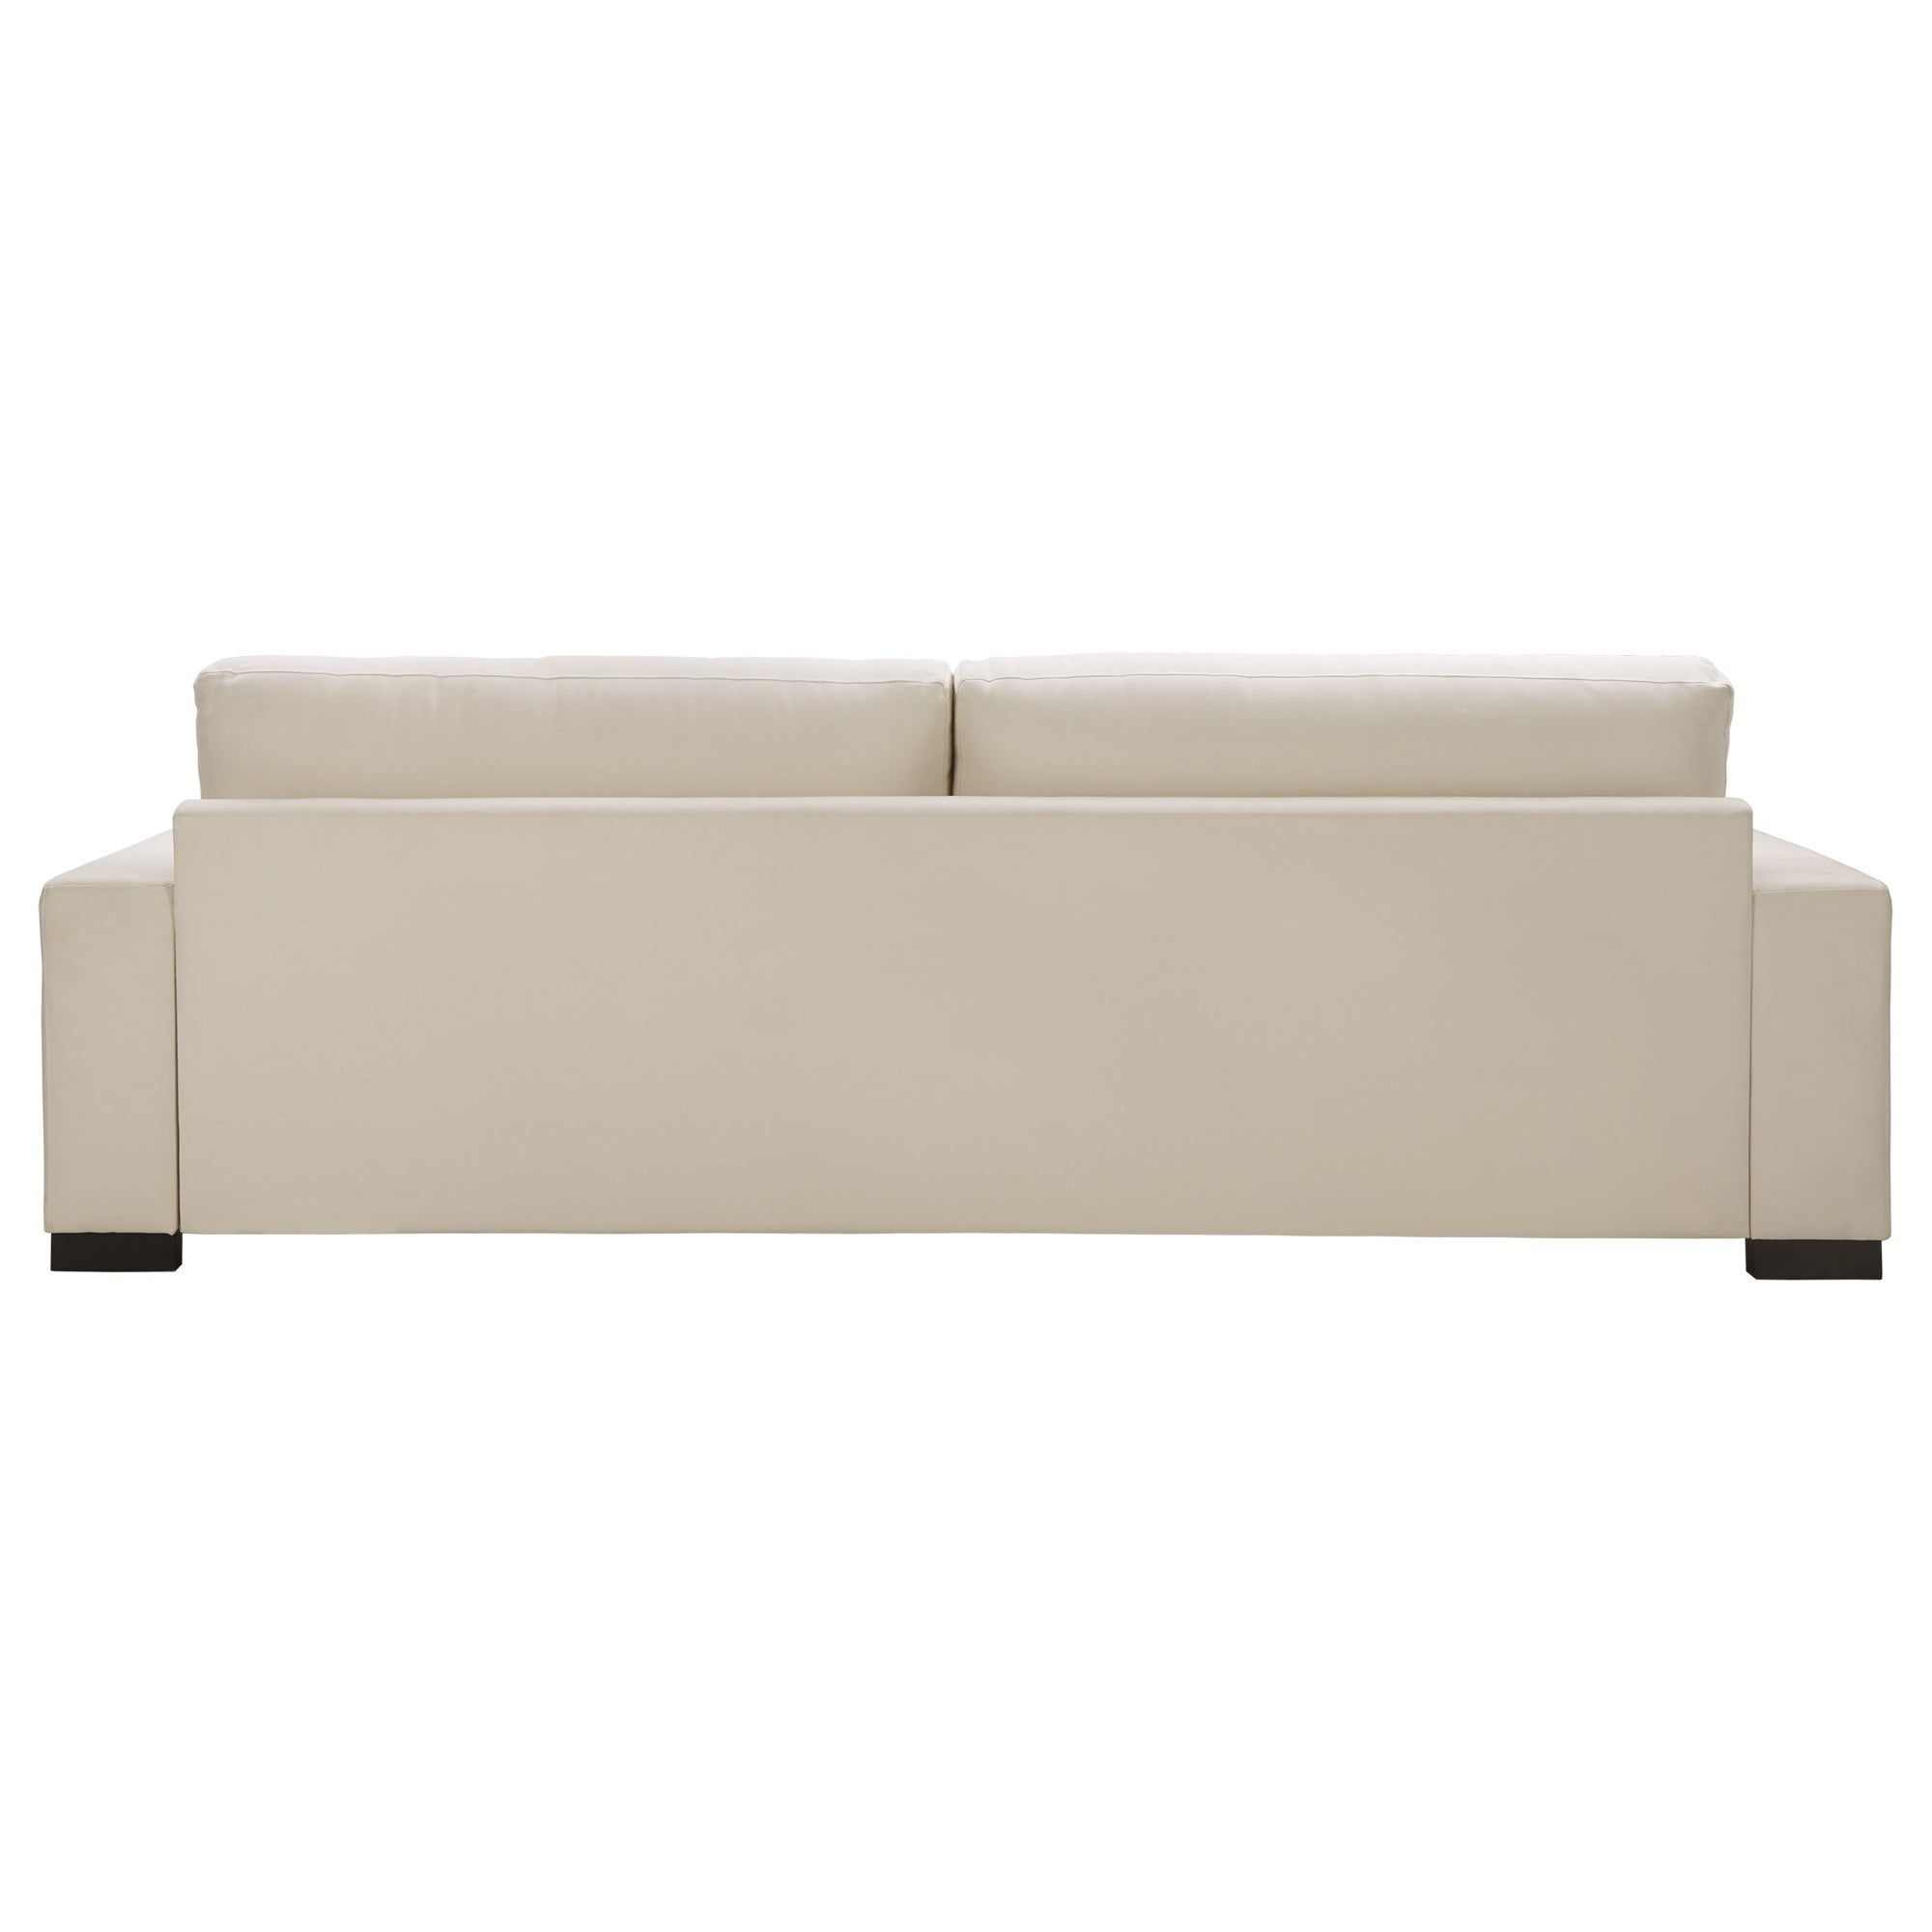 blanket platform unfinished product and without store nomad the side futons futon extra long trundle bed gray headboard